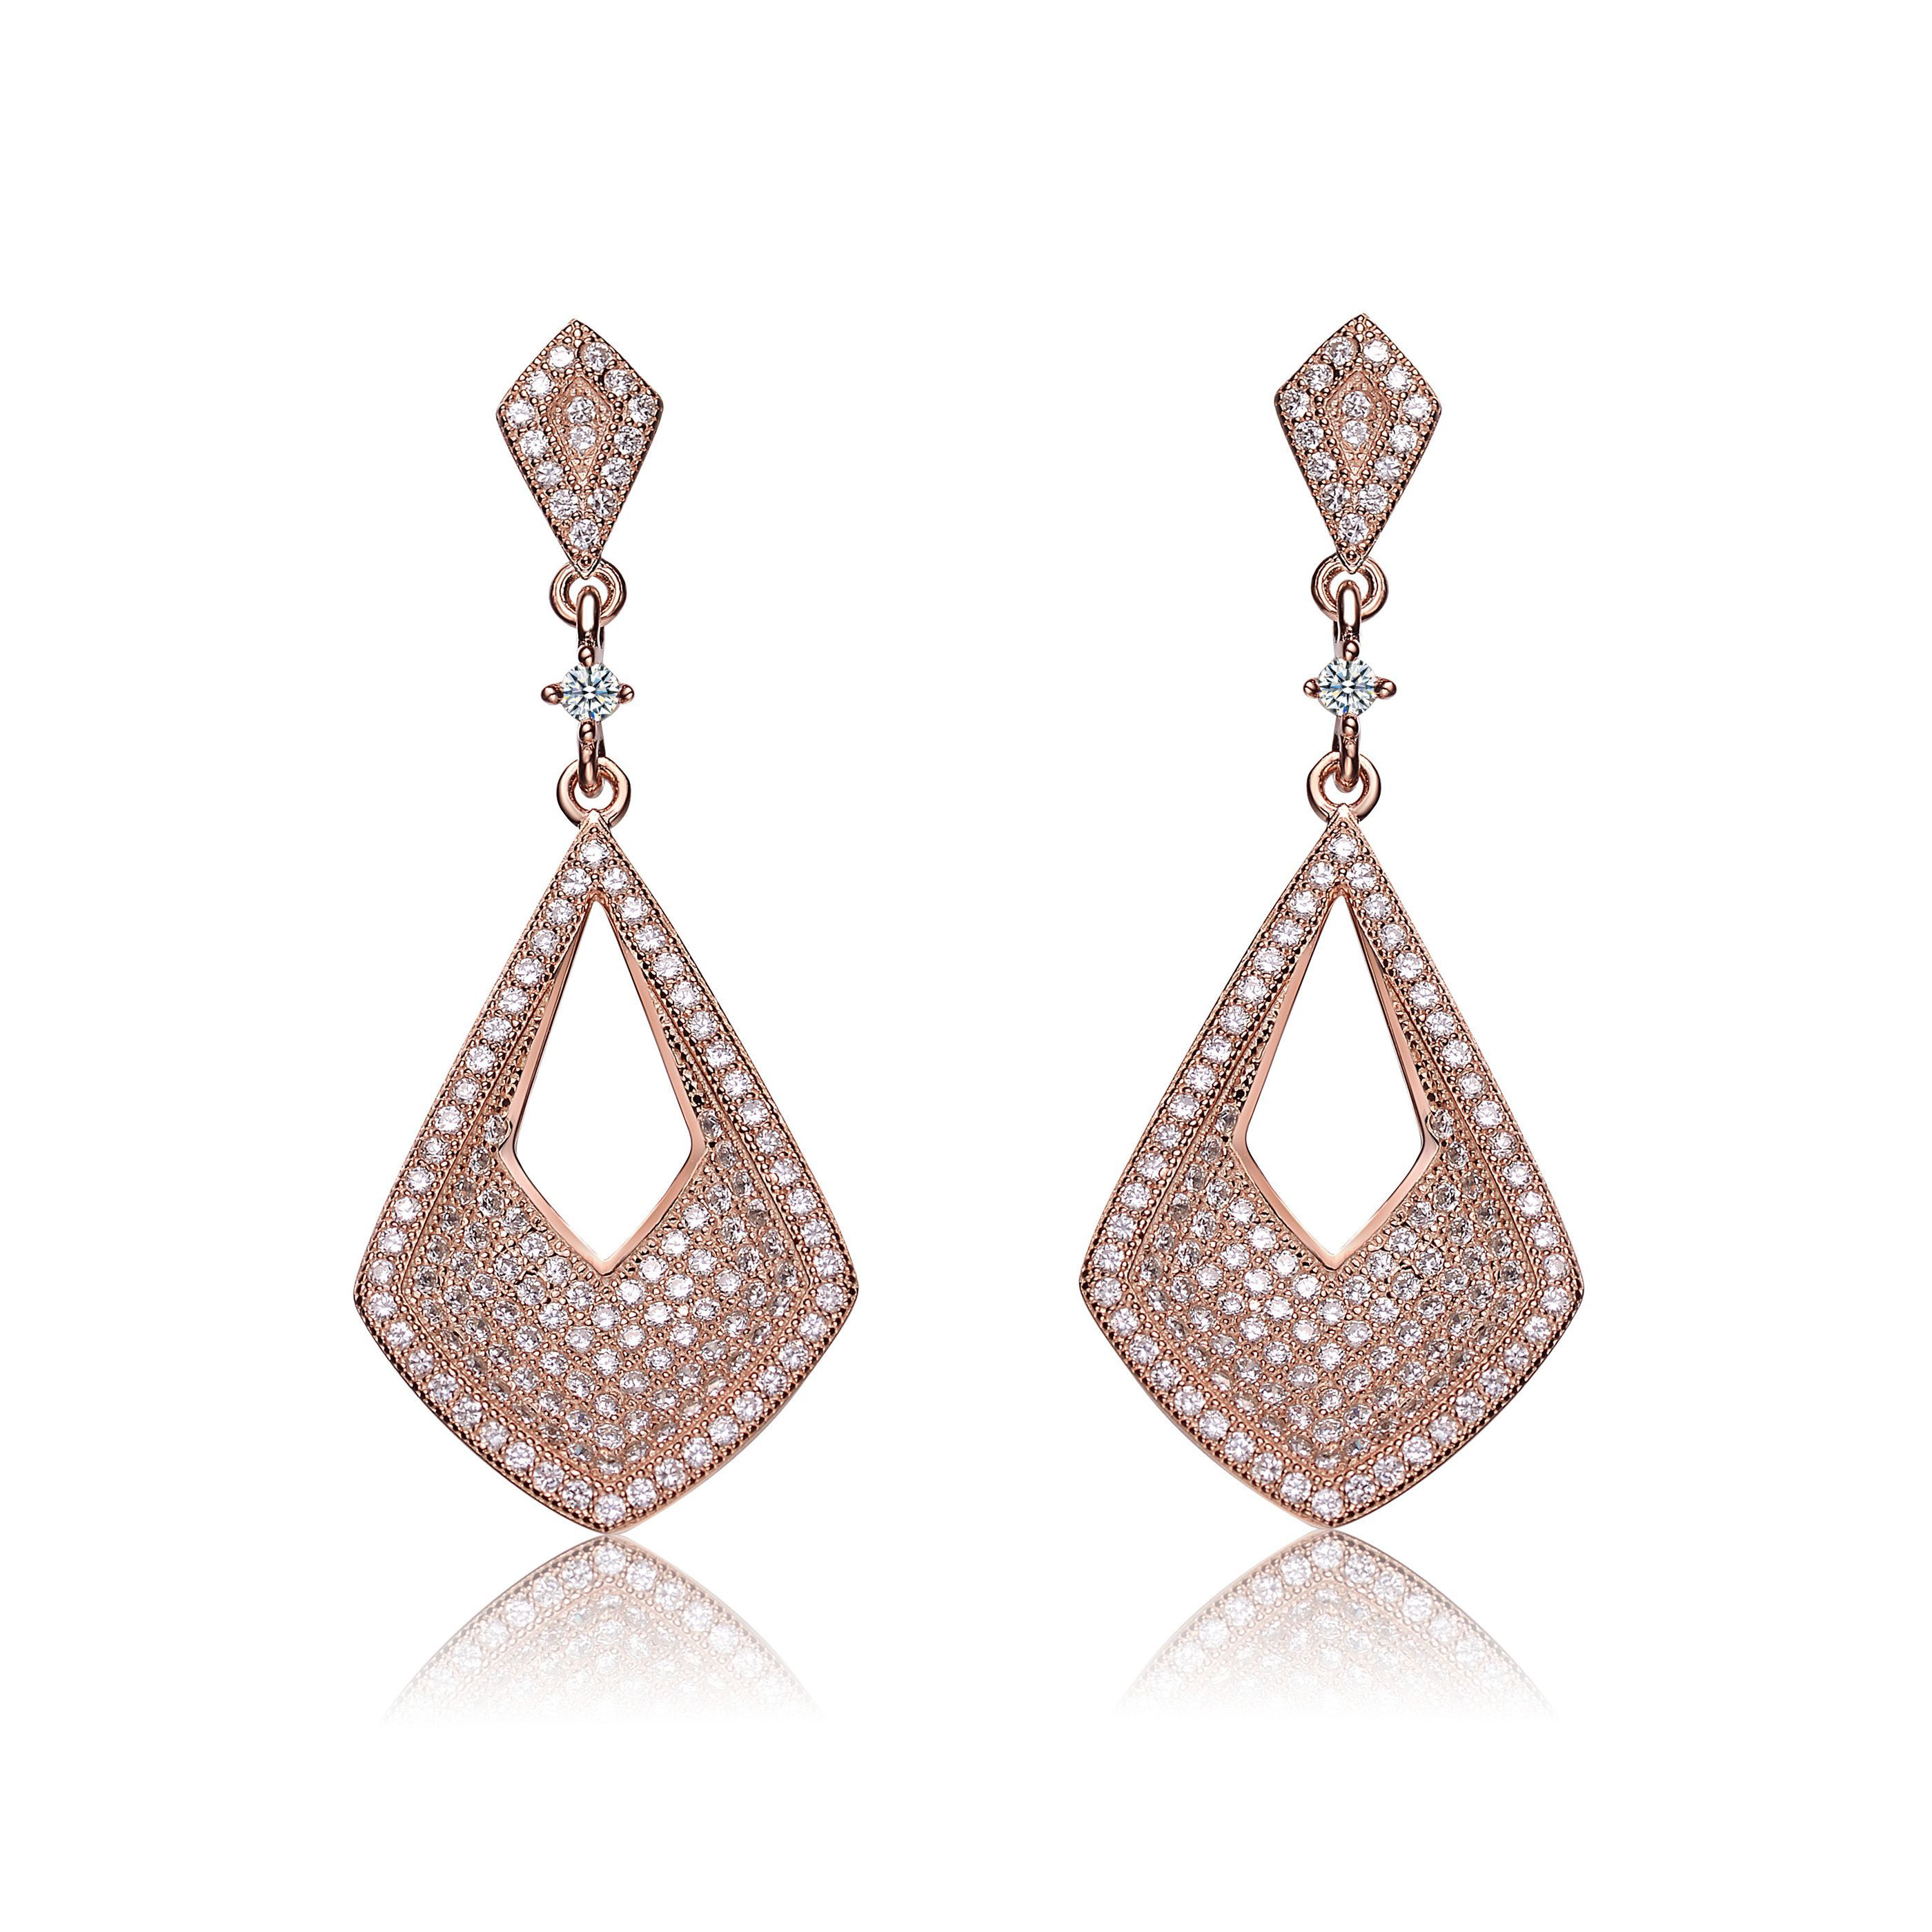 Lily Jewelry Ladies Fashion Sparkly Filigree Rose Gold Tone Water Drop Shape Drop Earrings for Women 1pbb8DEc1x